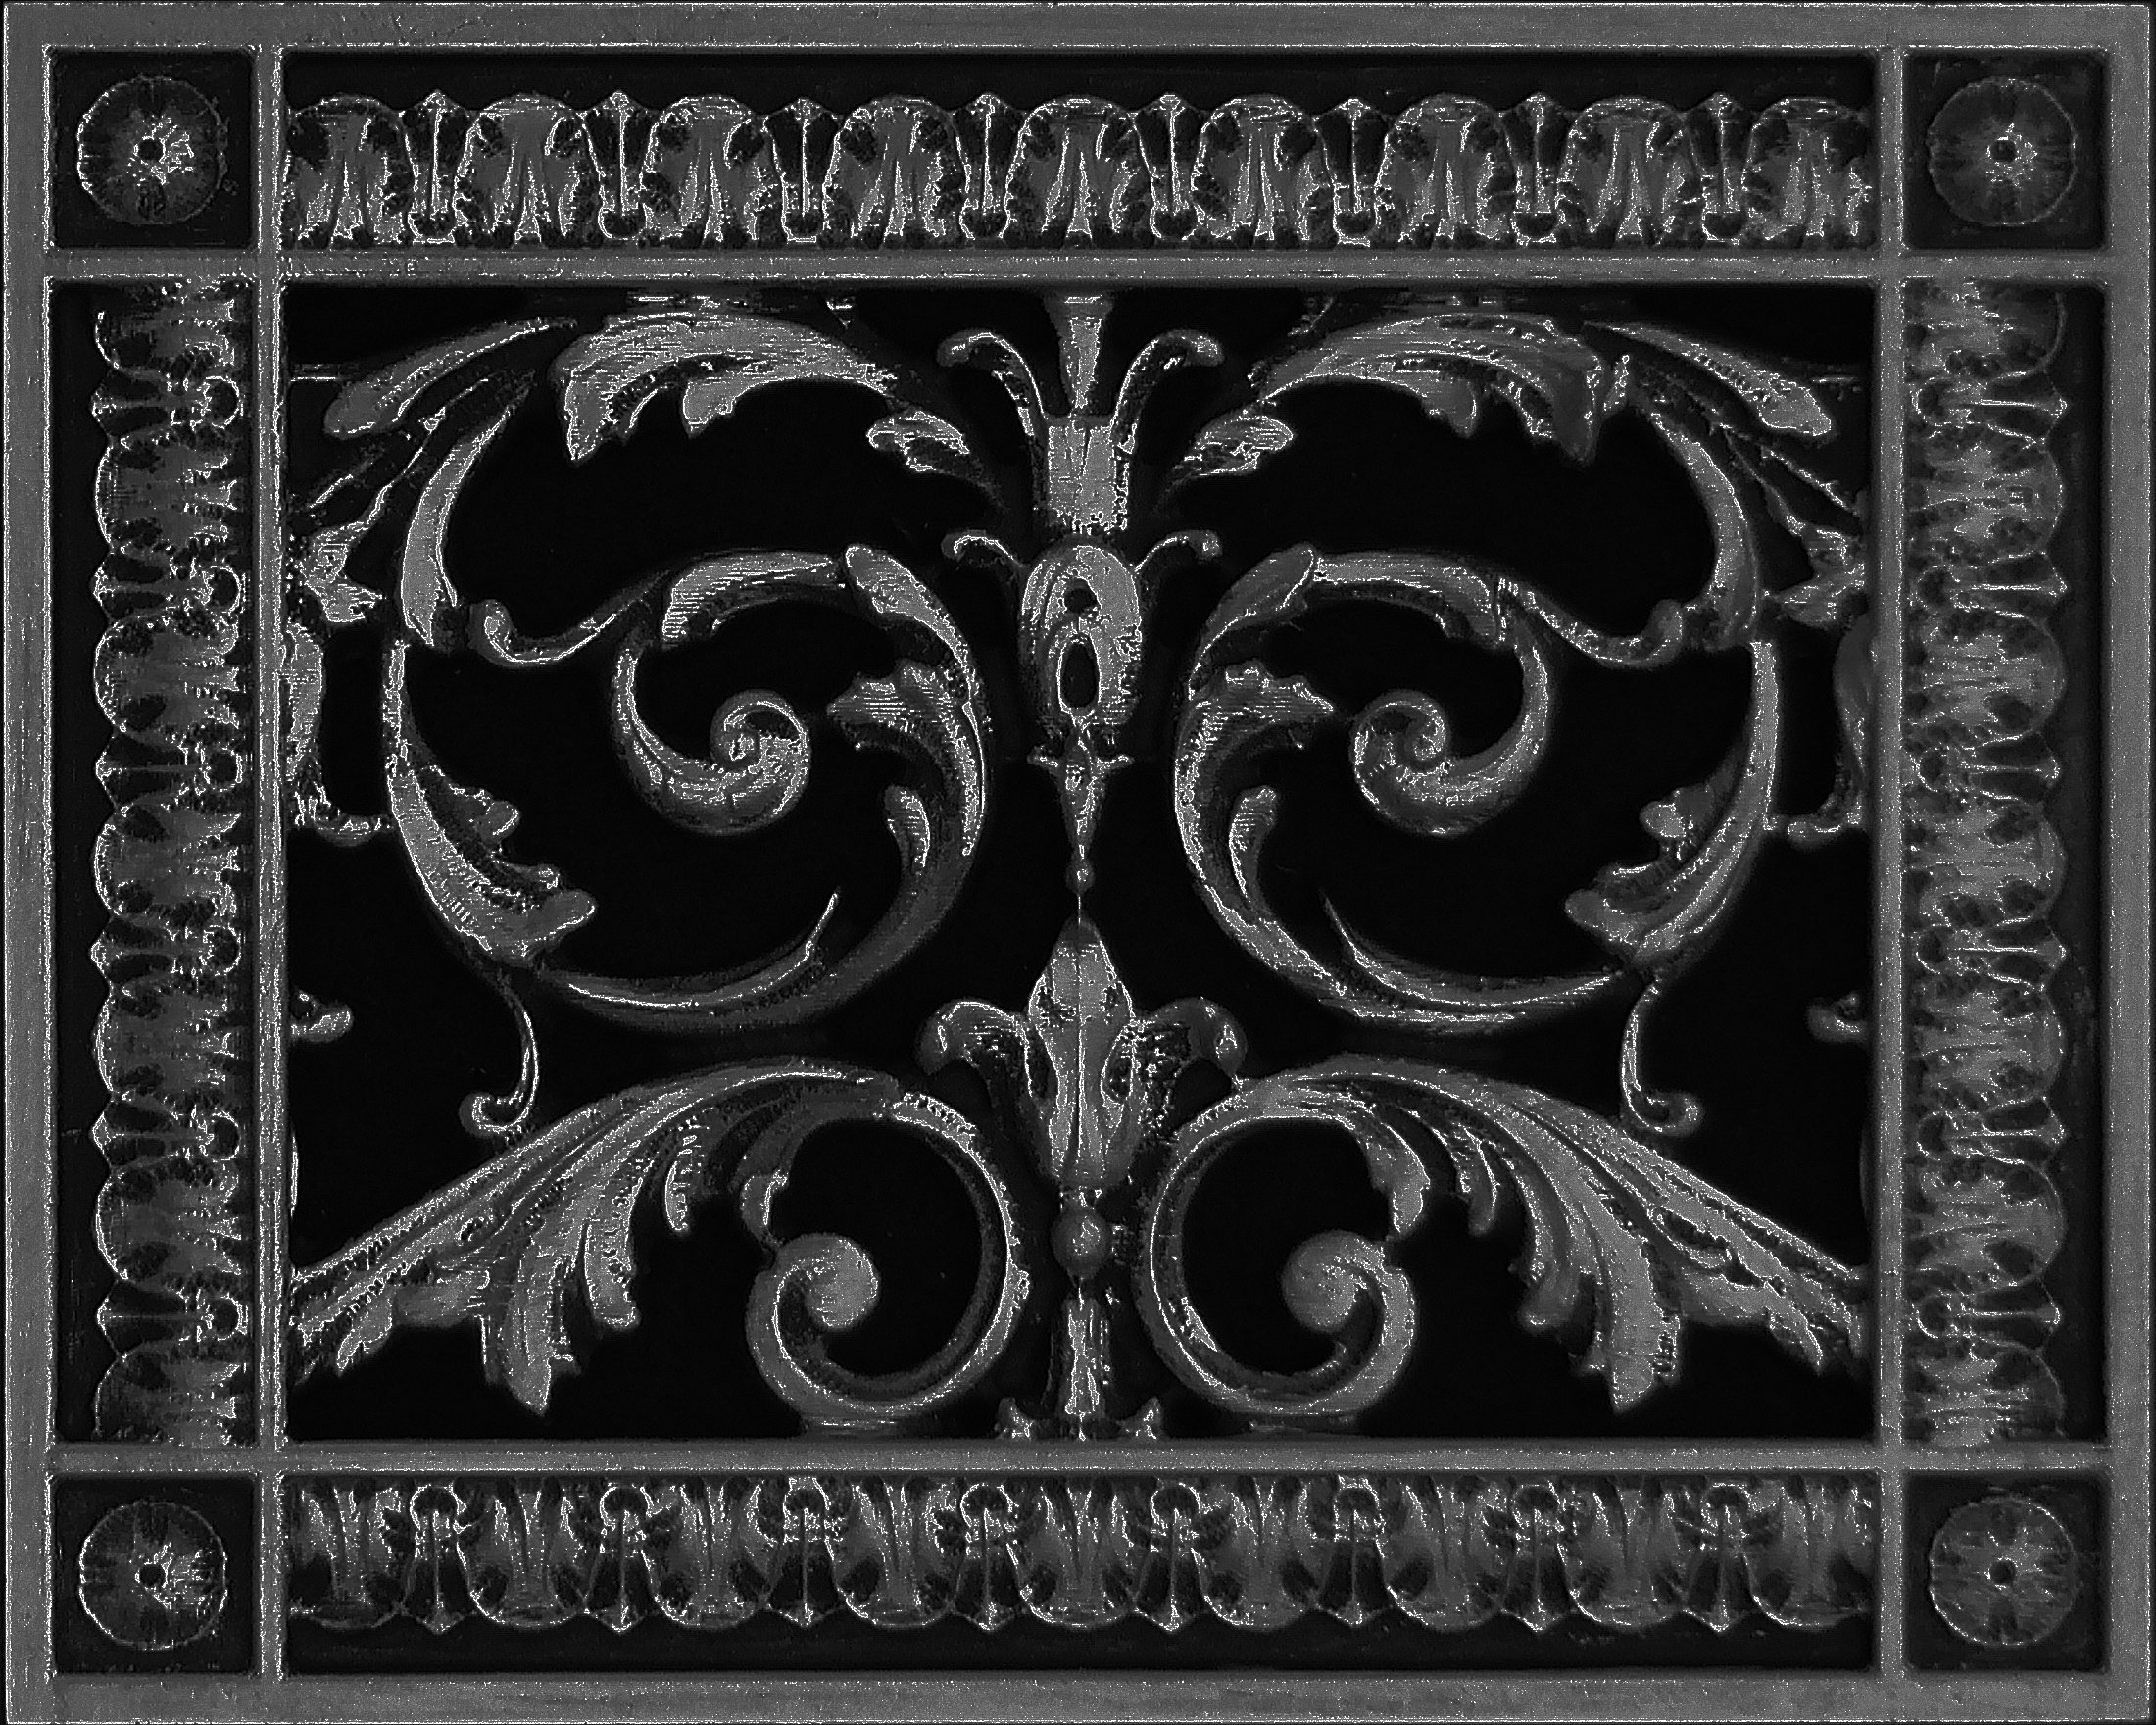 """Decorative Vent Cover, Grille, Return Register, Made of Urethane Resin, in French Style fits Over a 6""""x8"""" Duct Opening. Total Size, 8"""" x 10"""", Walls & Ceilings use only(not for Floors) (Black)"""